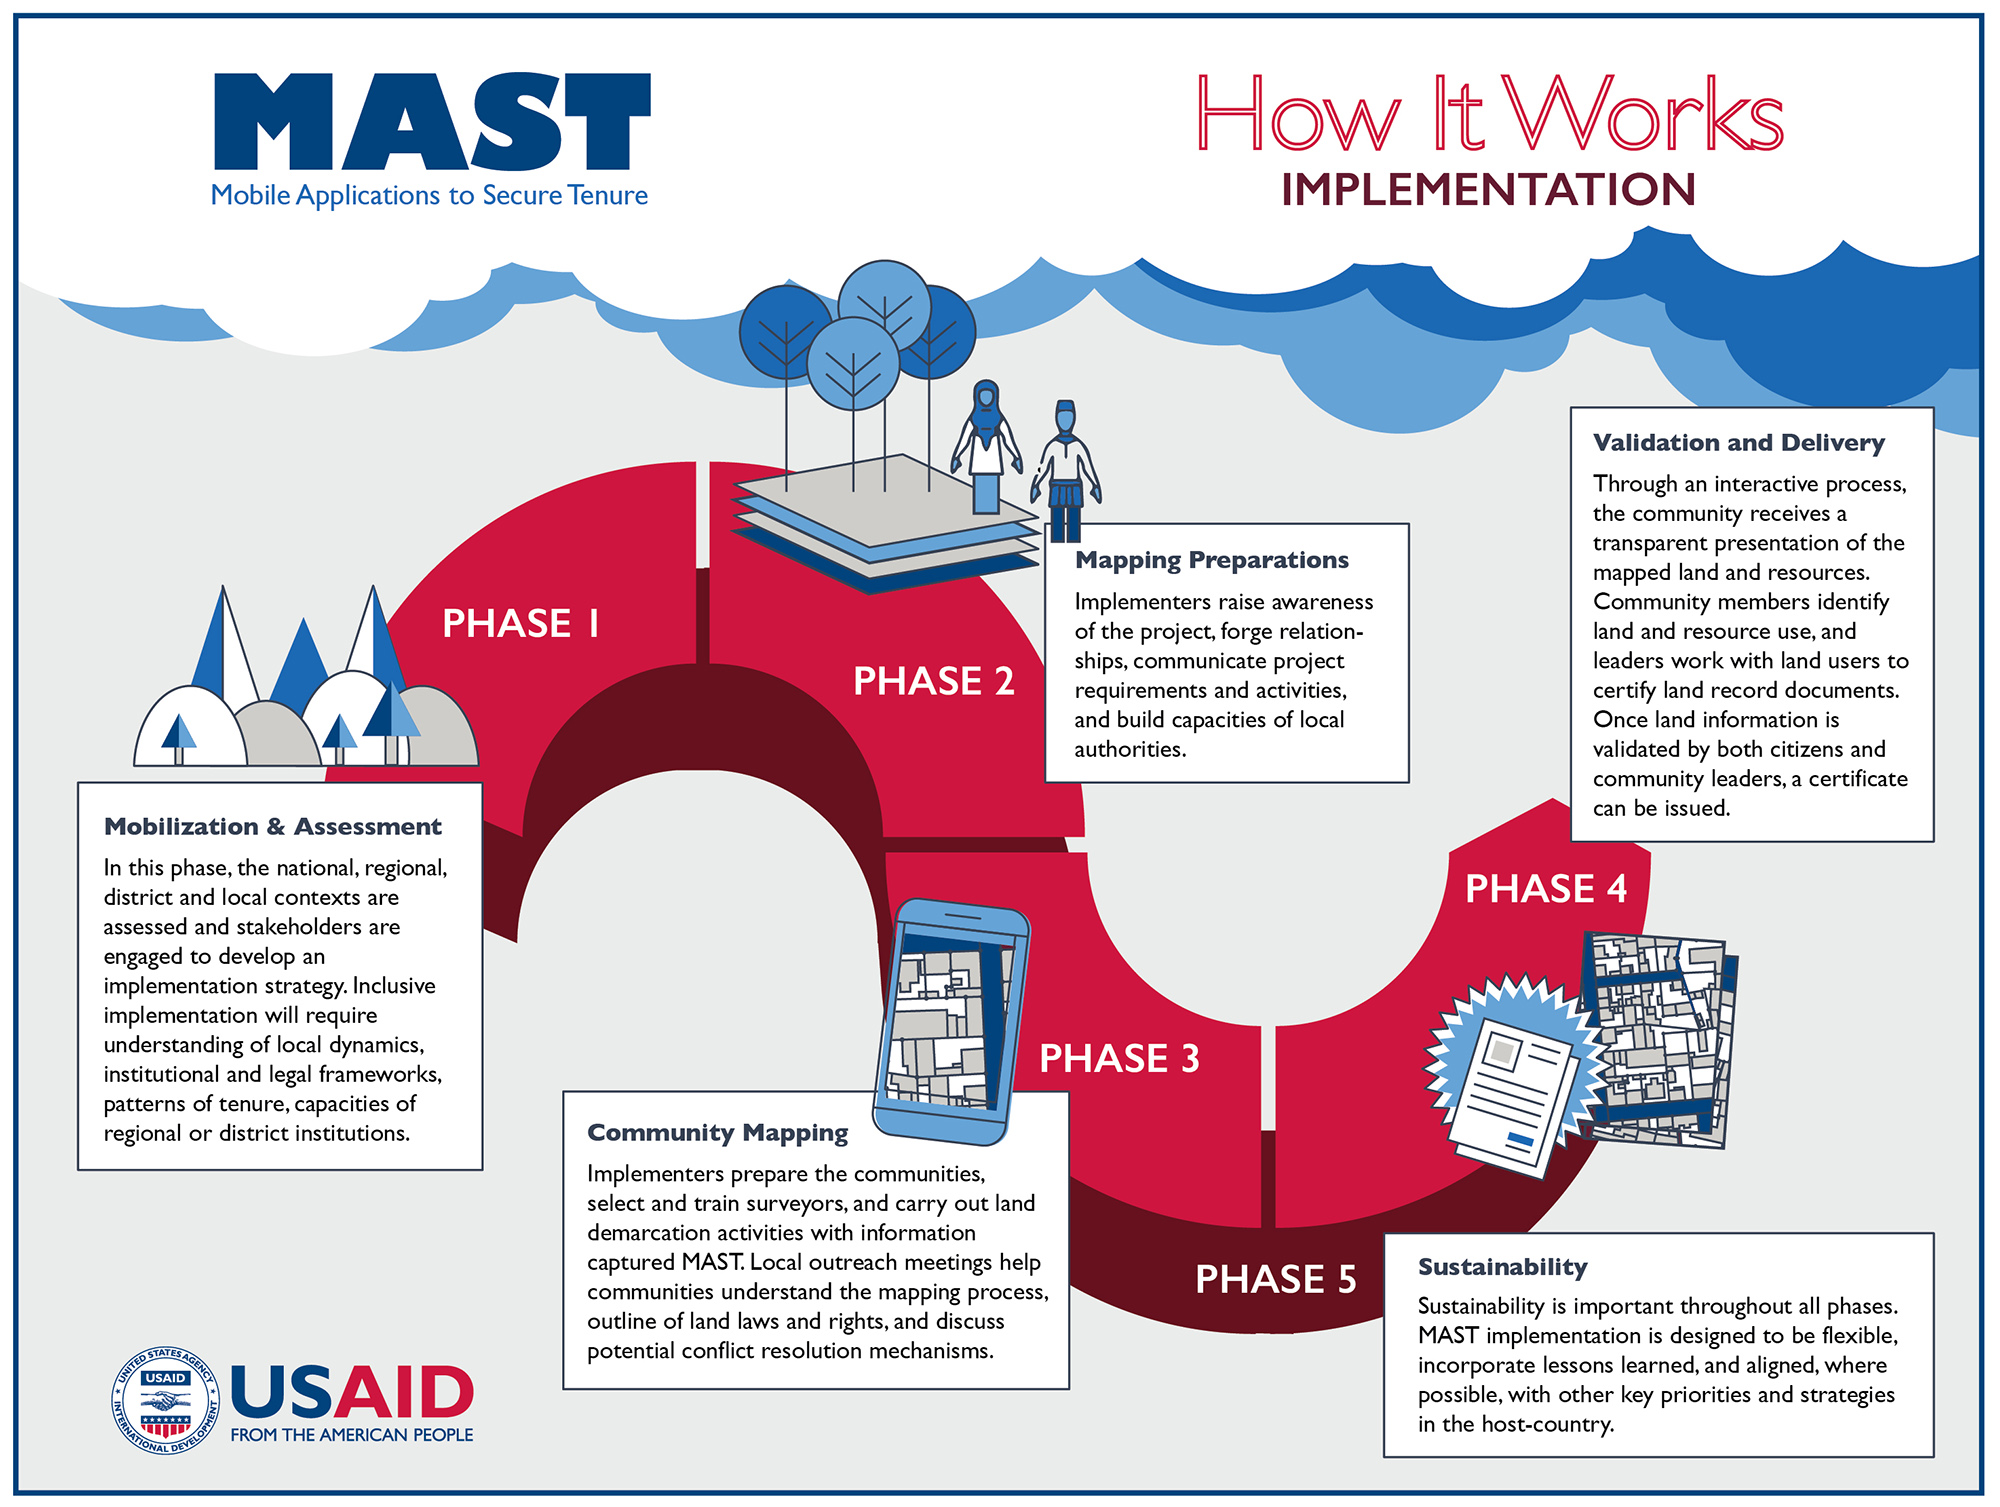 Graphic: MAST Implementation